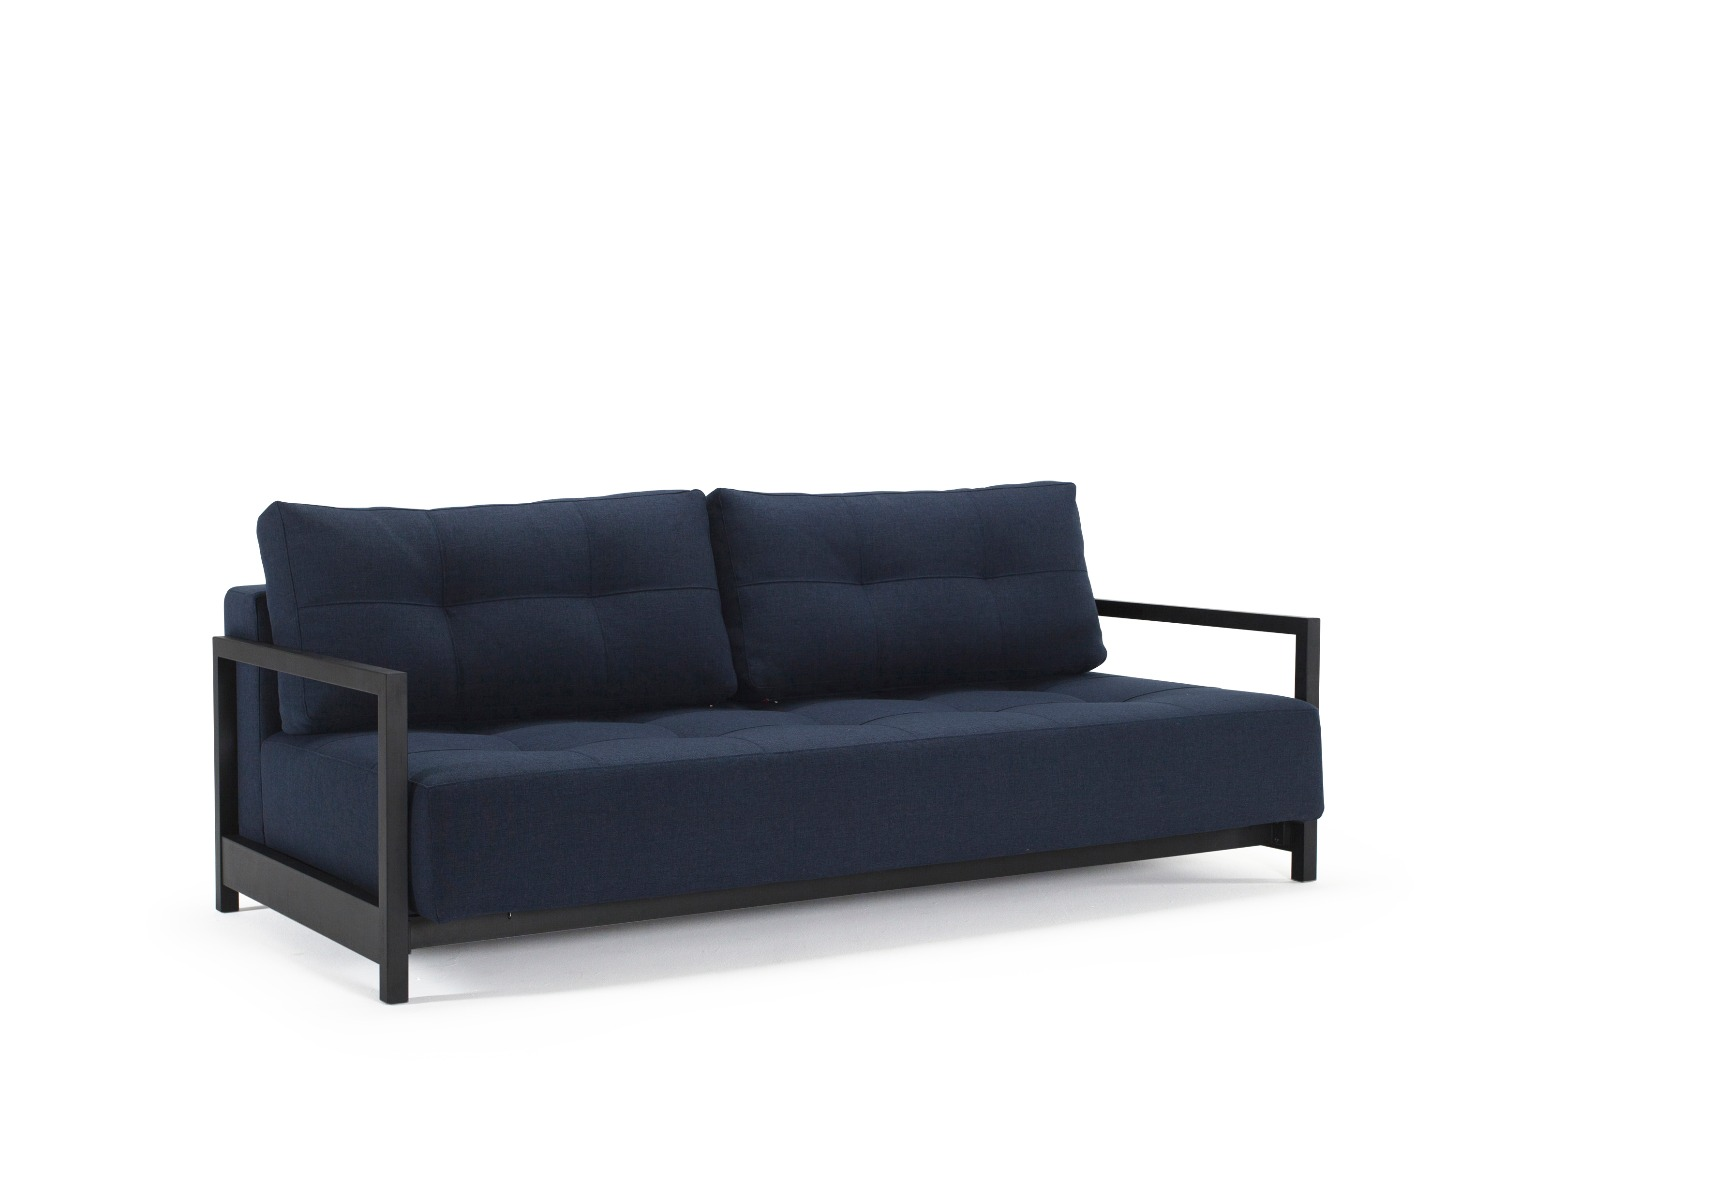 Bifrost Lounger - Mixed Dance Blue Sovesofa